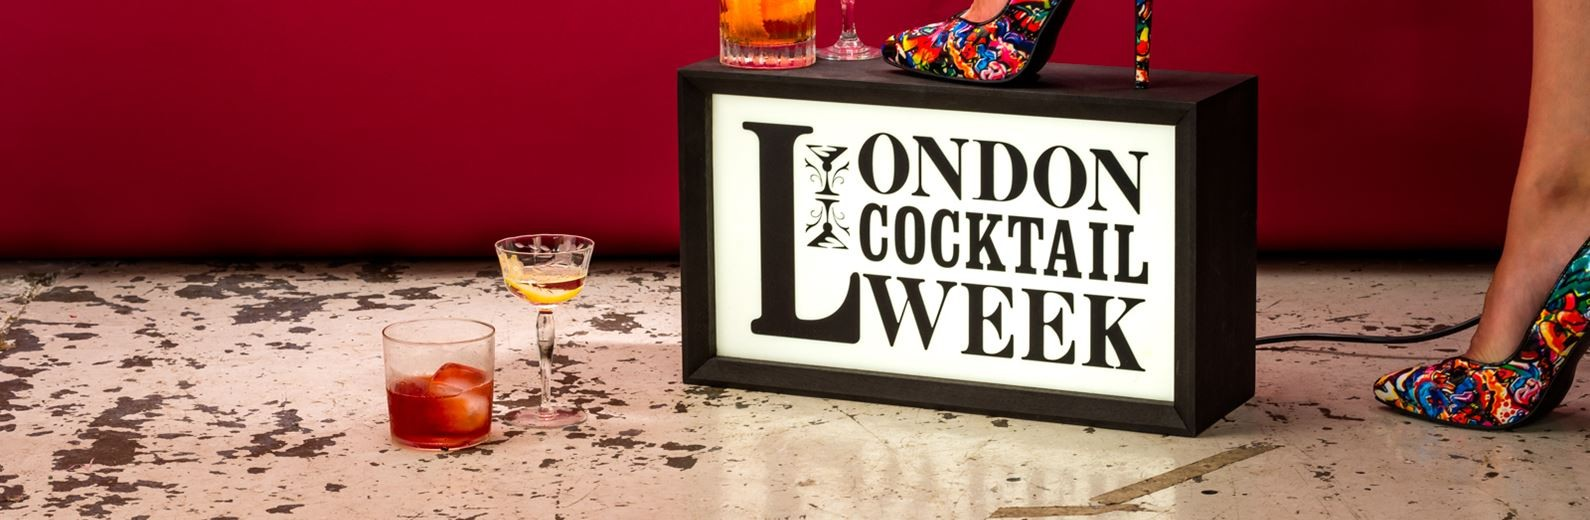 London Cocktail Week 2017 Events In Cocktail Bars London